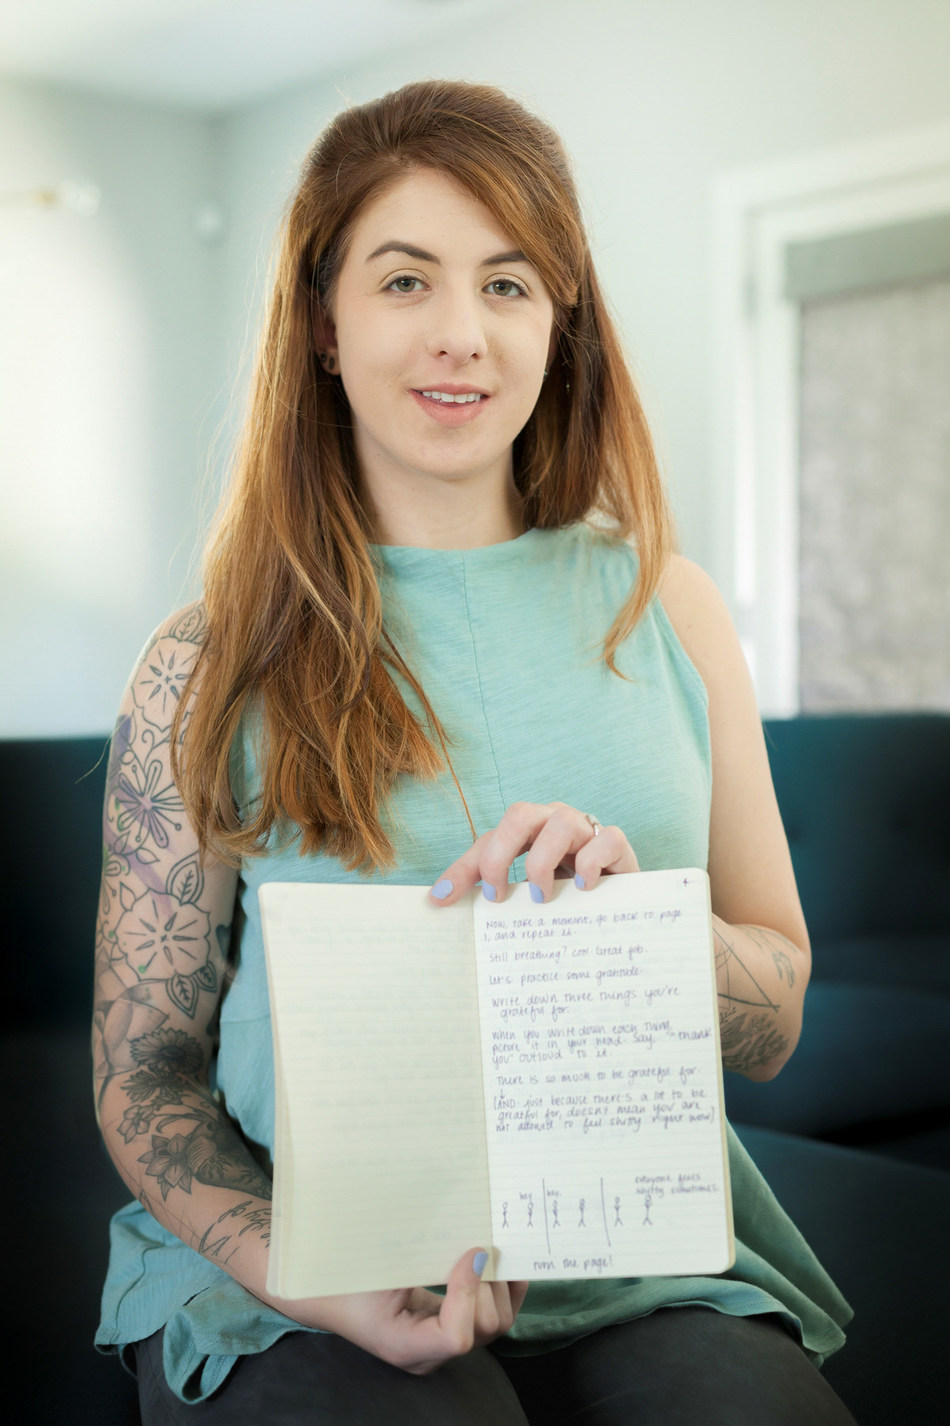 """If You're Freaking Out, Read This,"" is a forthcoming book detailing Simone DeAngelis' psychiatric treatment and recovery at the Menninger Clinic and serves as her reminder of why she shouldn't commit suicide.The Menninger Clinic is a leading mental health care system serving the U.S. with expert team-based diagnostic assessment and specialty treatment that improves the health of patients with the aid of treatment outcomes research."